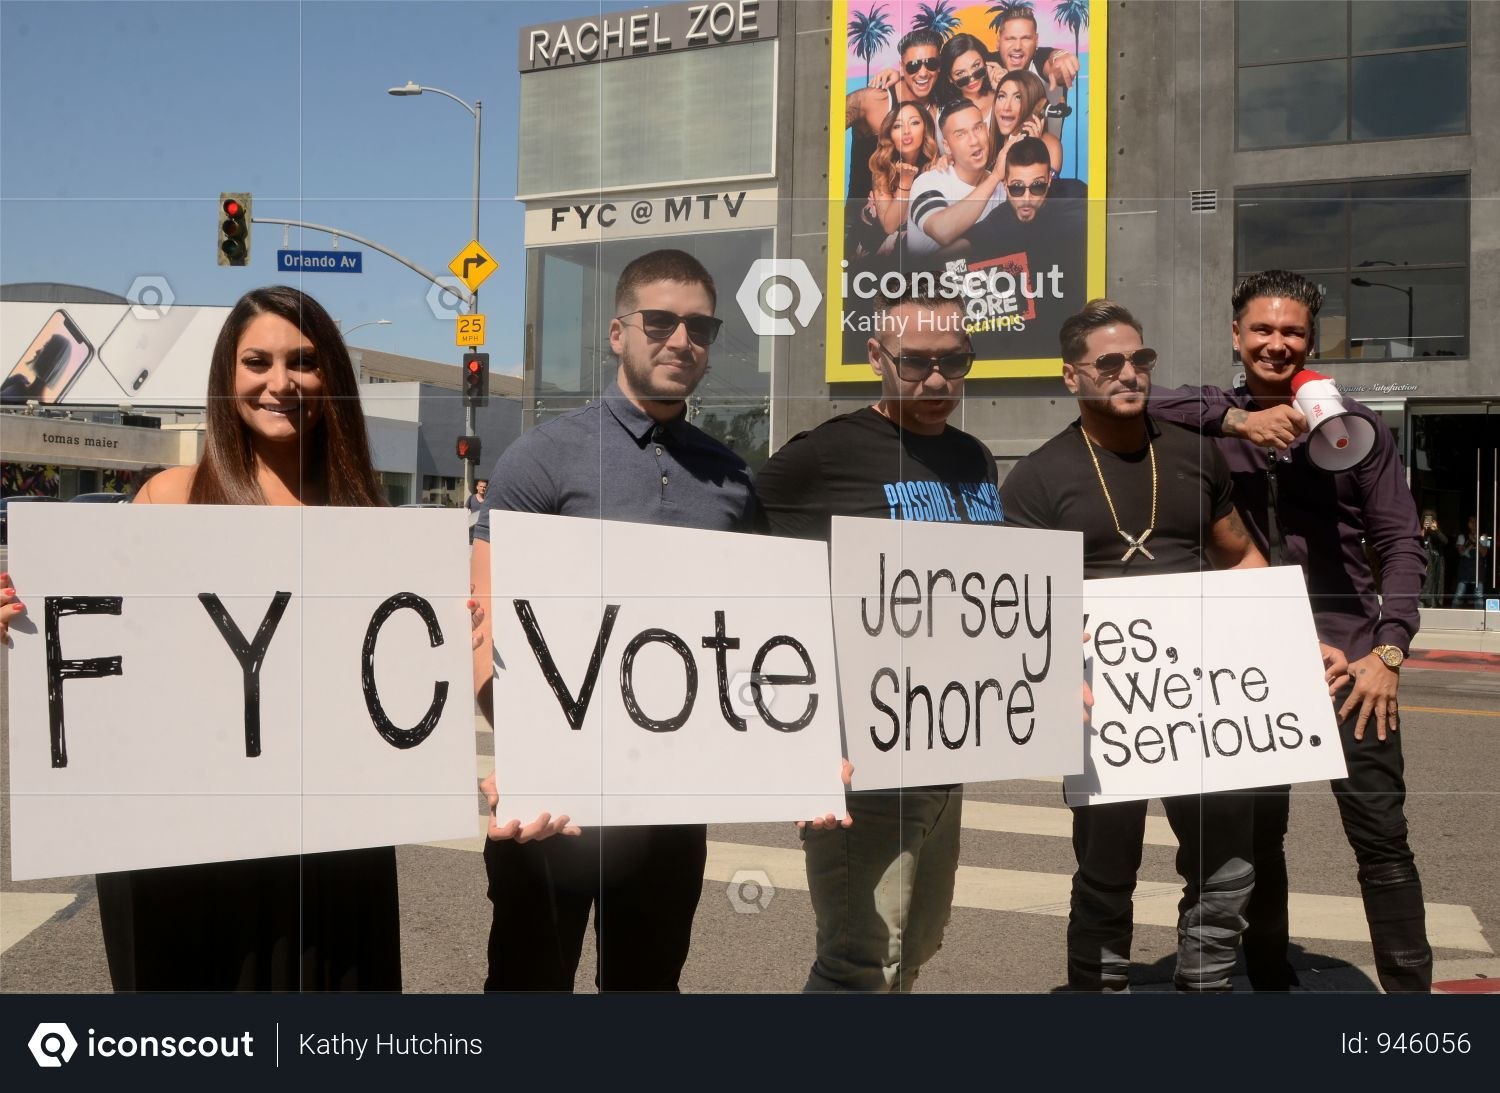 Deena Nicole Cortese Vinny Guadagnino Mike The Situation Ronnie Ortiz Magro And Pauly D At Usa Jersey Shore Fyc Hollywood Photo Jersey Shore West Hollywood